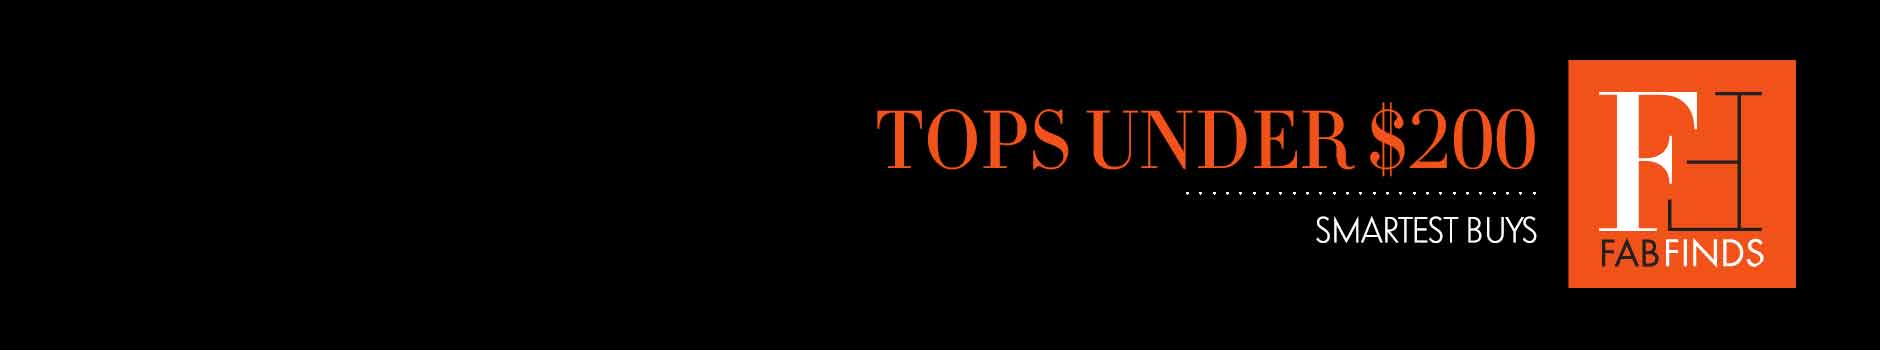 Fab Finds: Tops Under $200